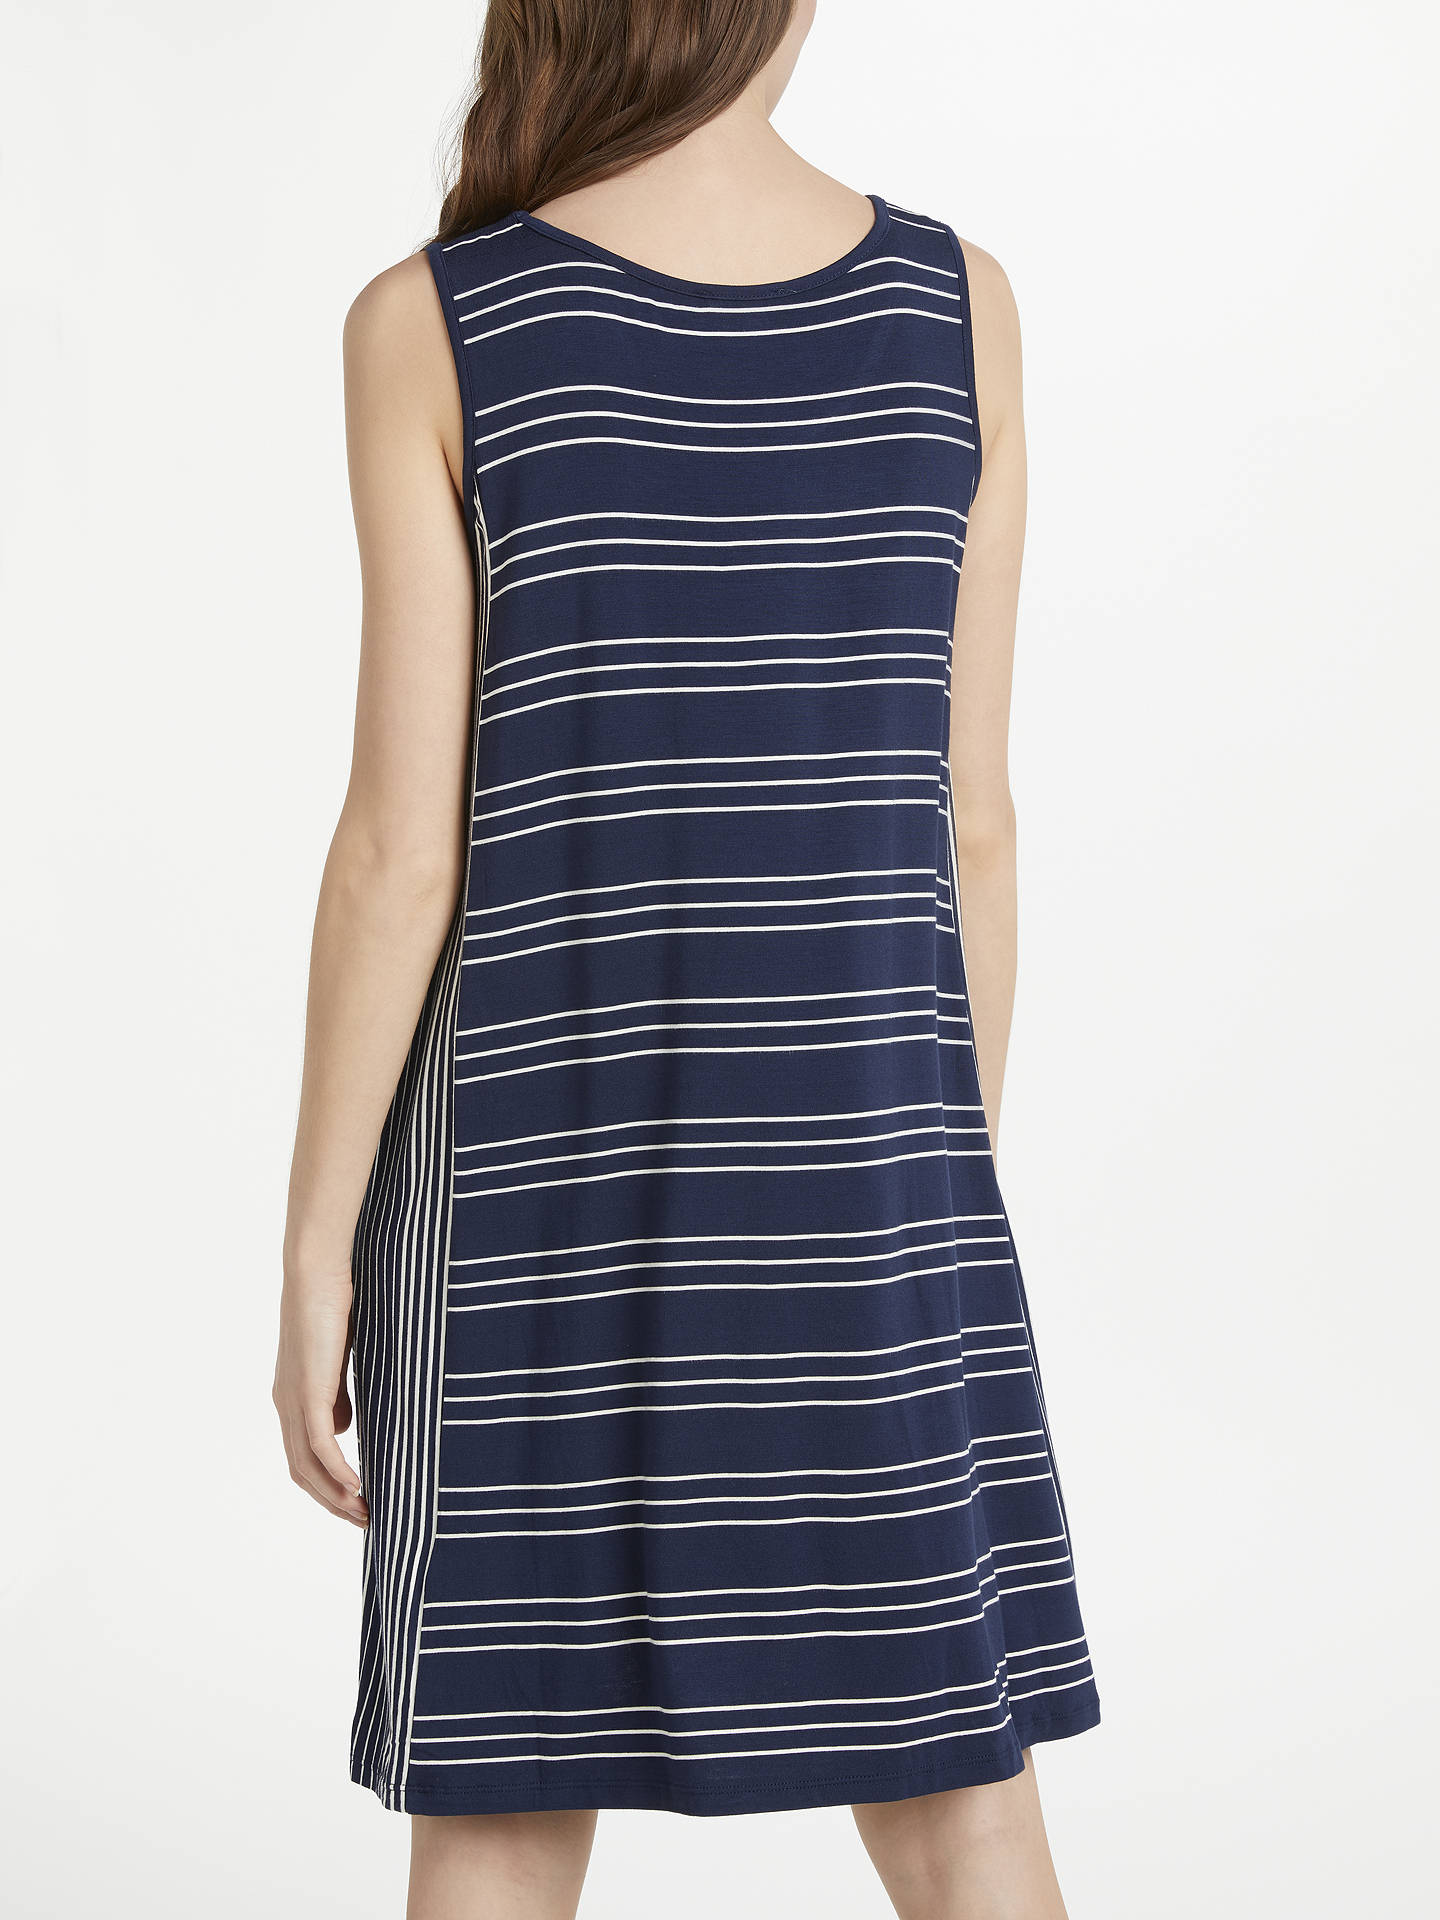 BuyMax Studio Sleeveless Striped Jersey Dress, Navy/Ivory, XS Online at johnlewis.com